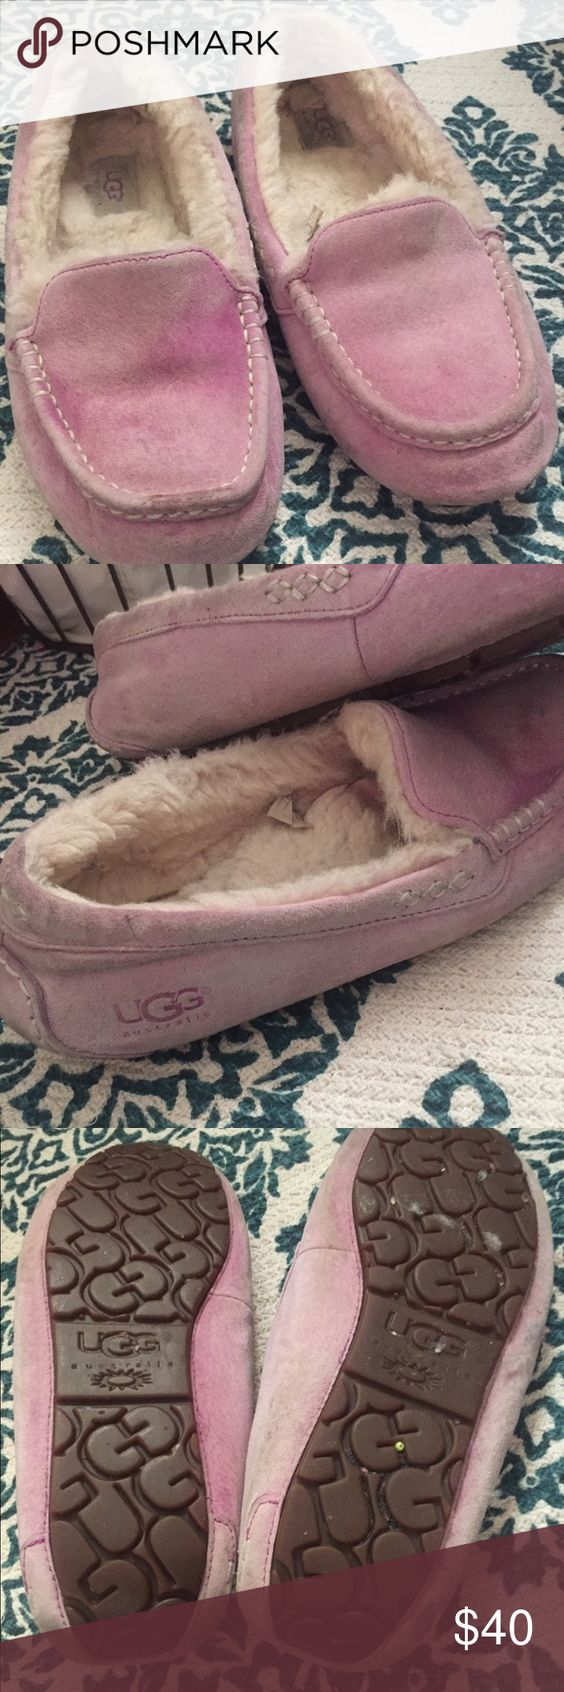 Ugg slippers purple size 9 women's moccasins Worn but will wash prior to ship. These can wash cold water then air dry. Women's size 9 UGG Shoes Moccasins